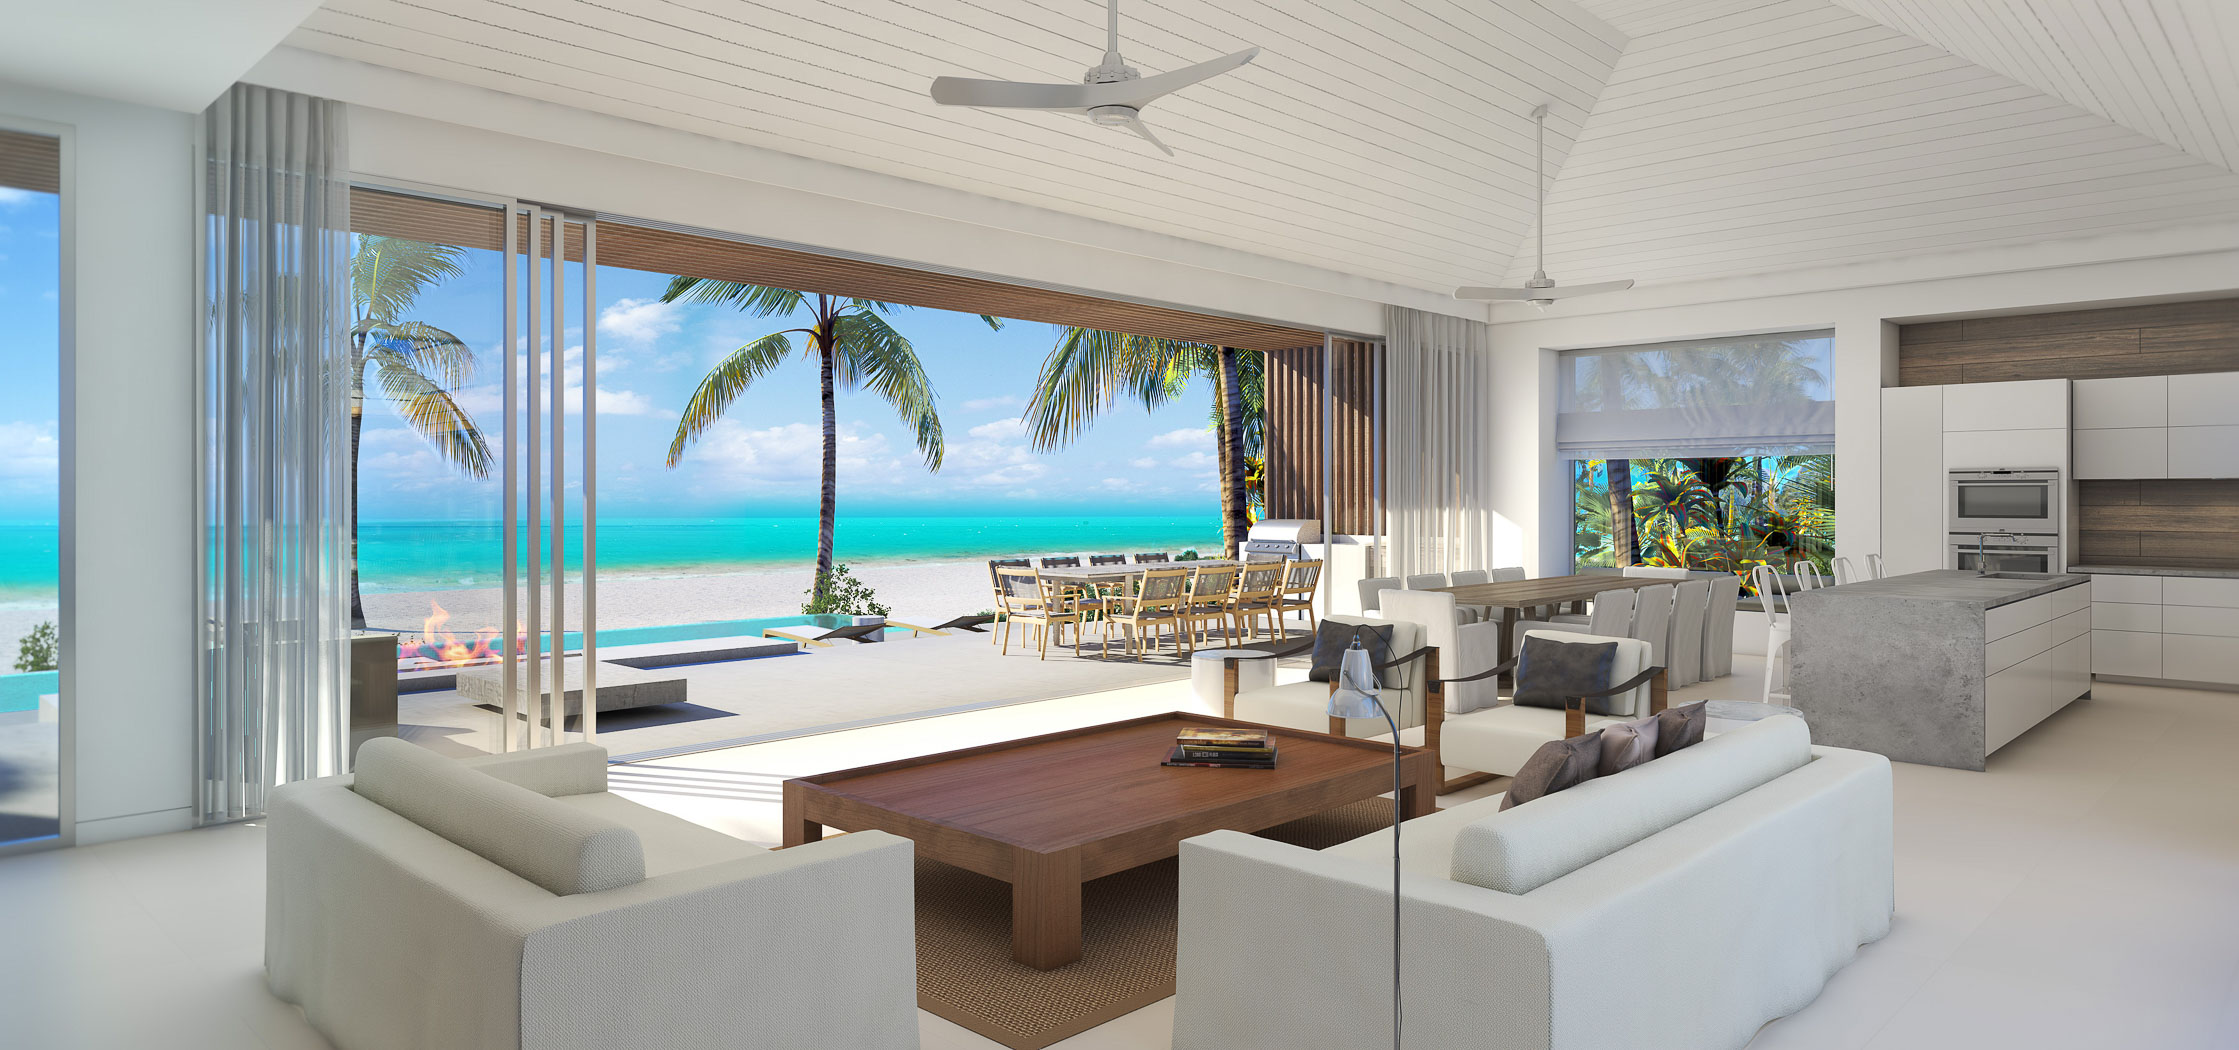 Long Bay Villas - Beach Enclave